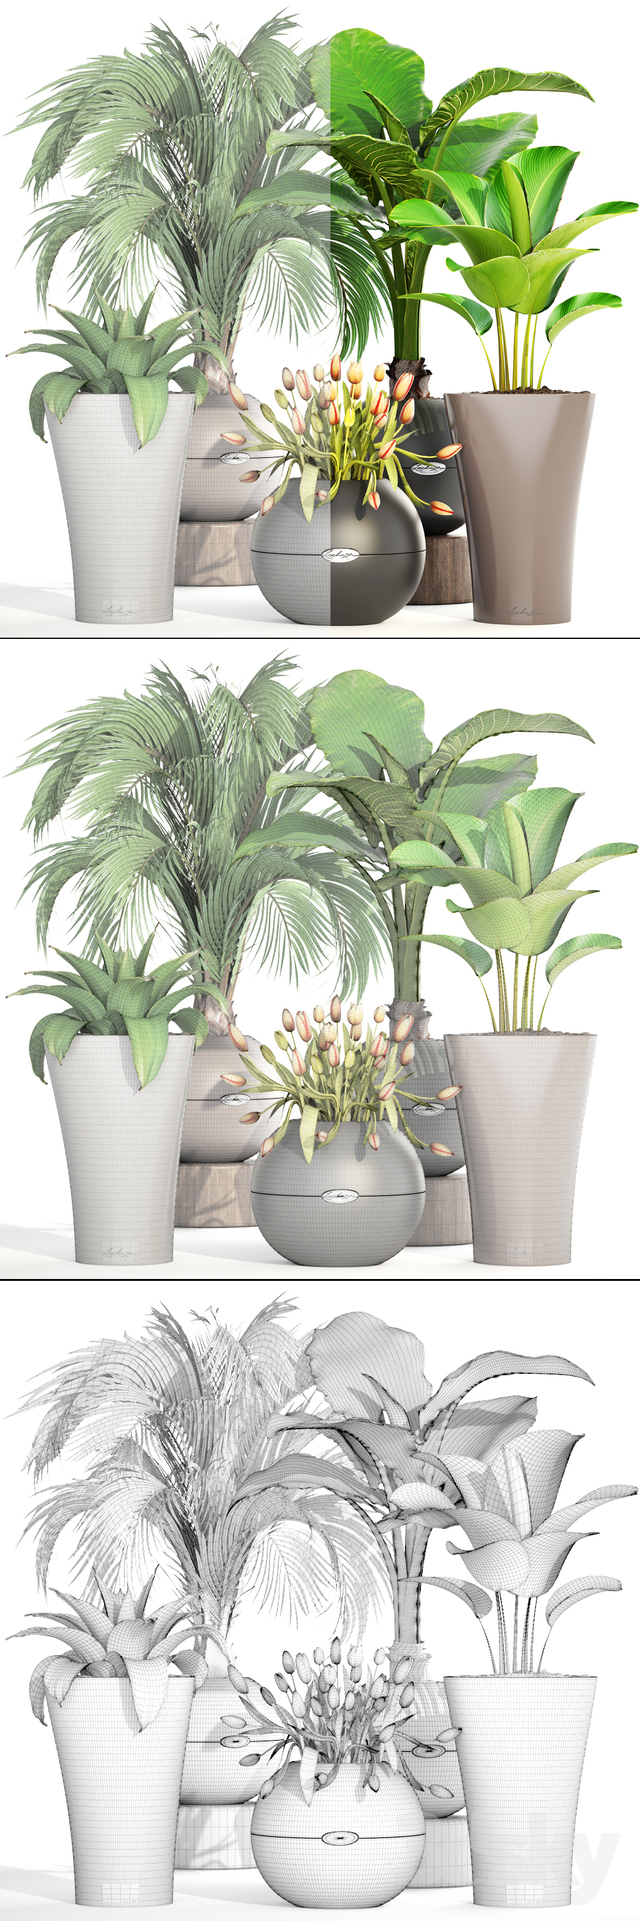 Collection Of Plants 191.